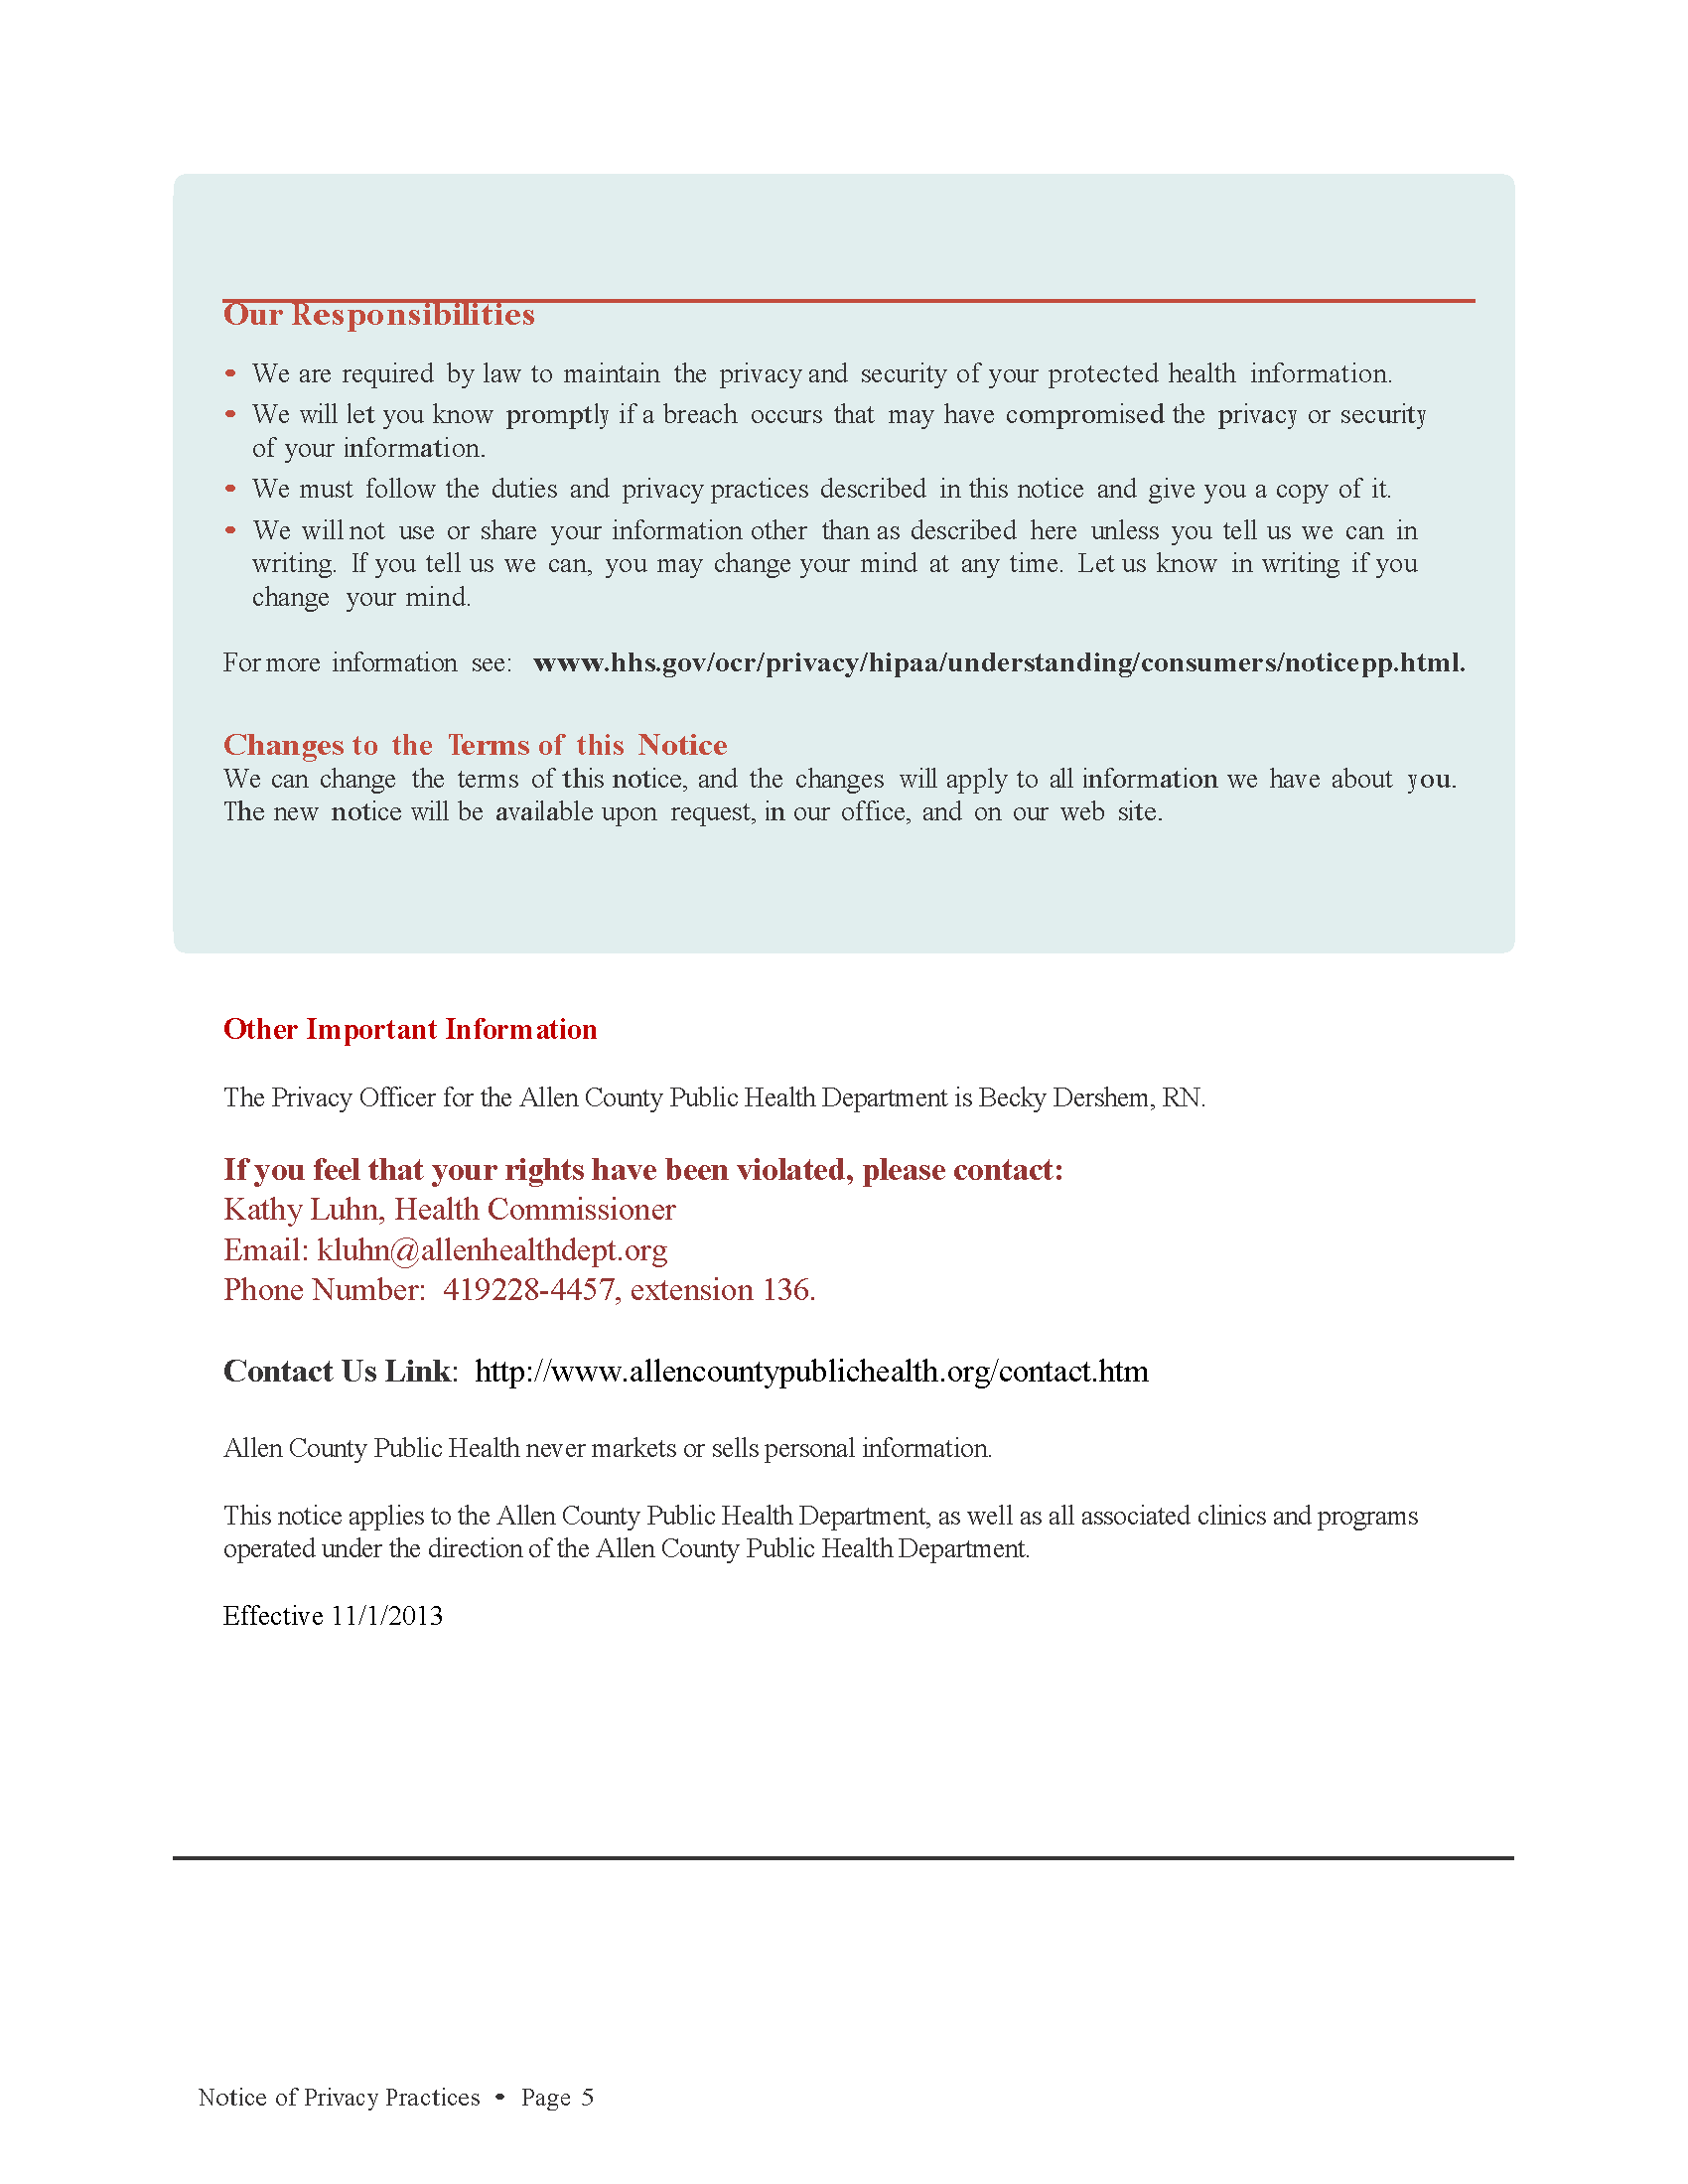 Privacy Policy Final_Page_5